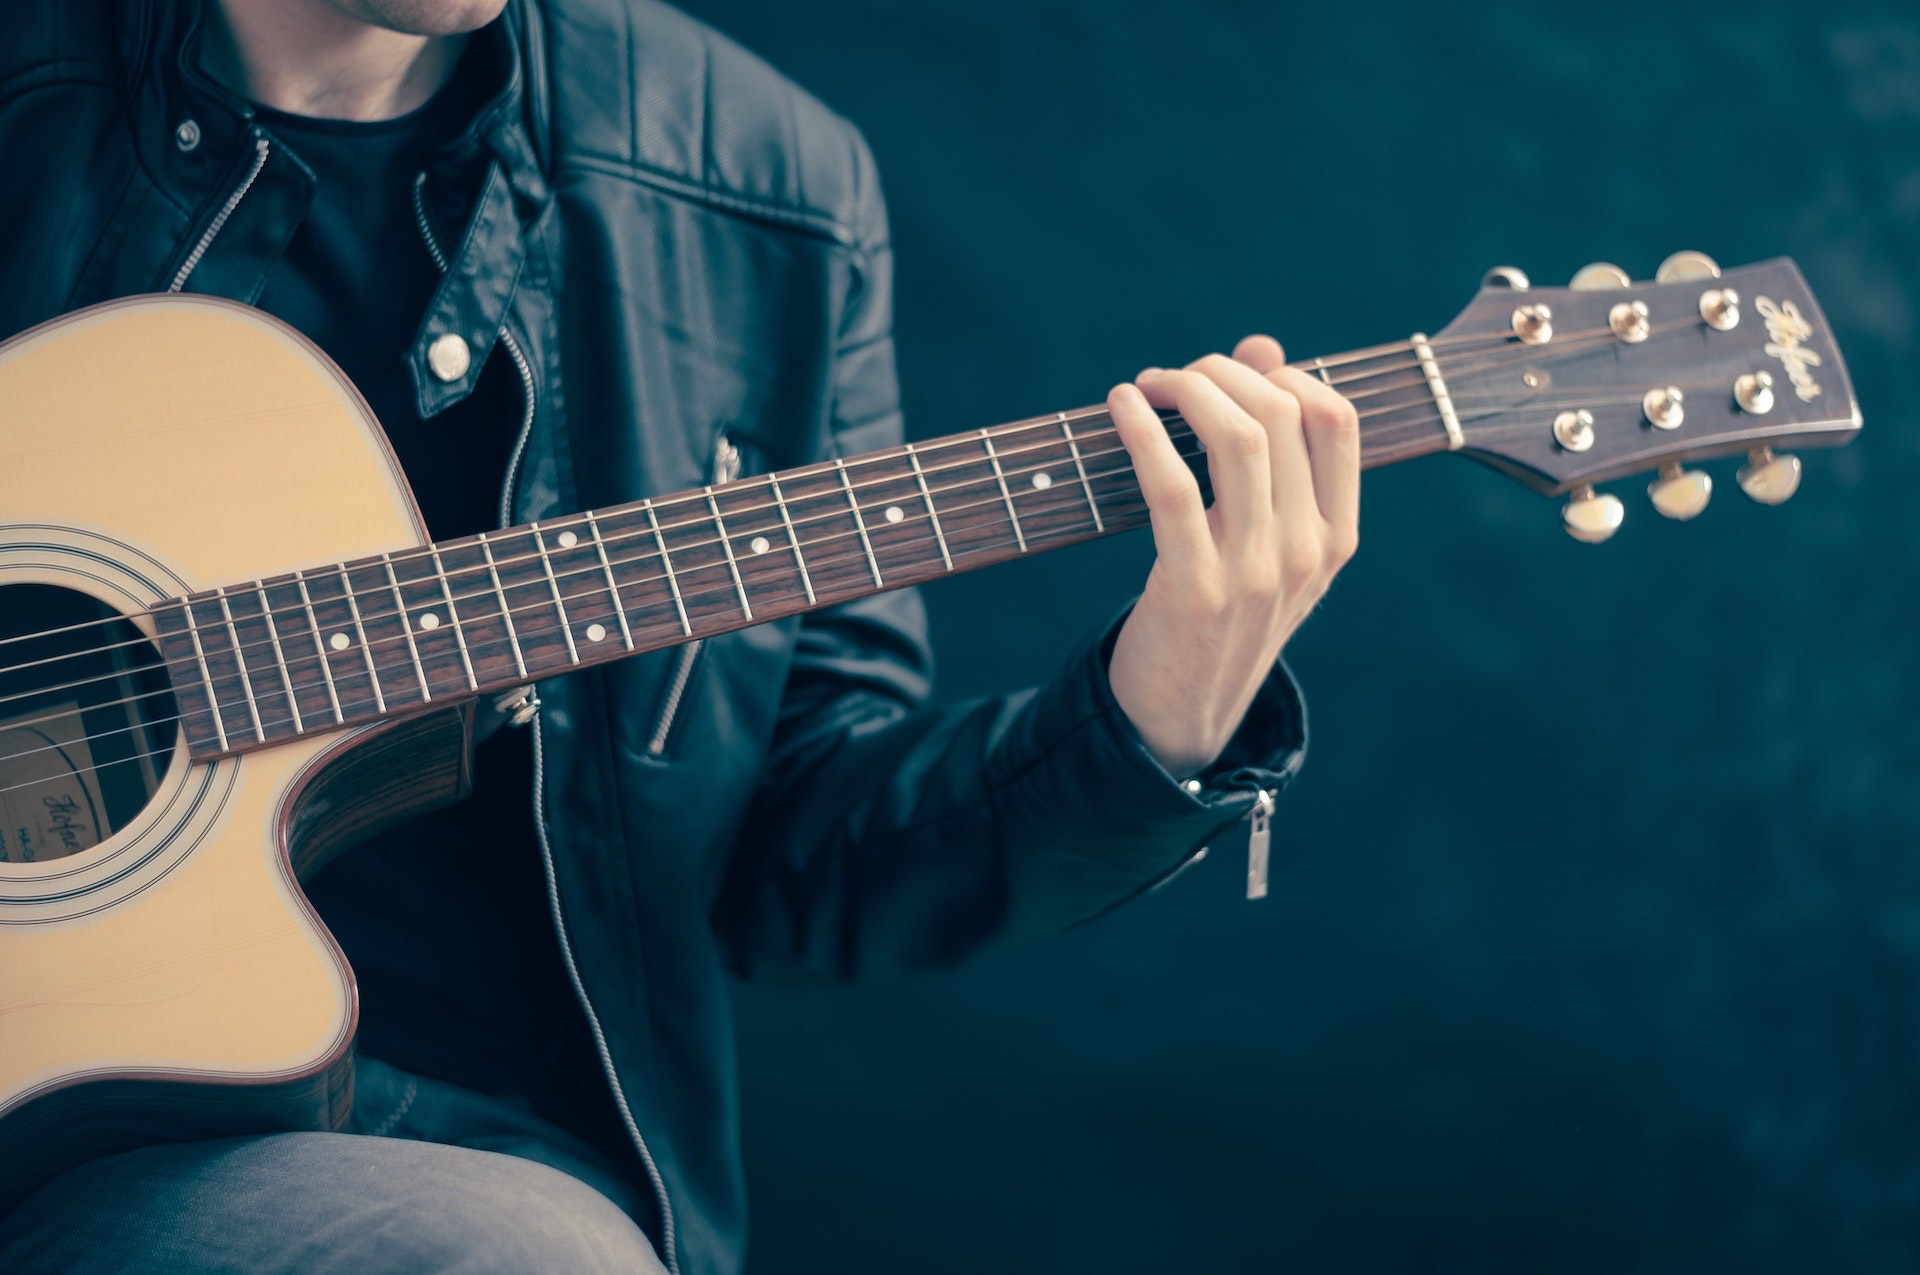 How to Hire Freelance Composer, Arranger, Audio Engineer or Musician